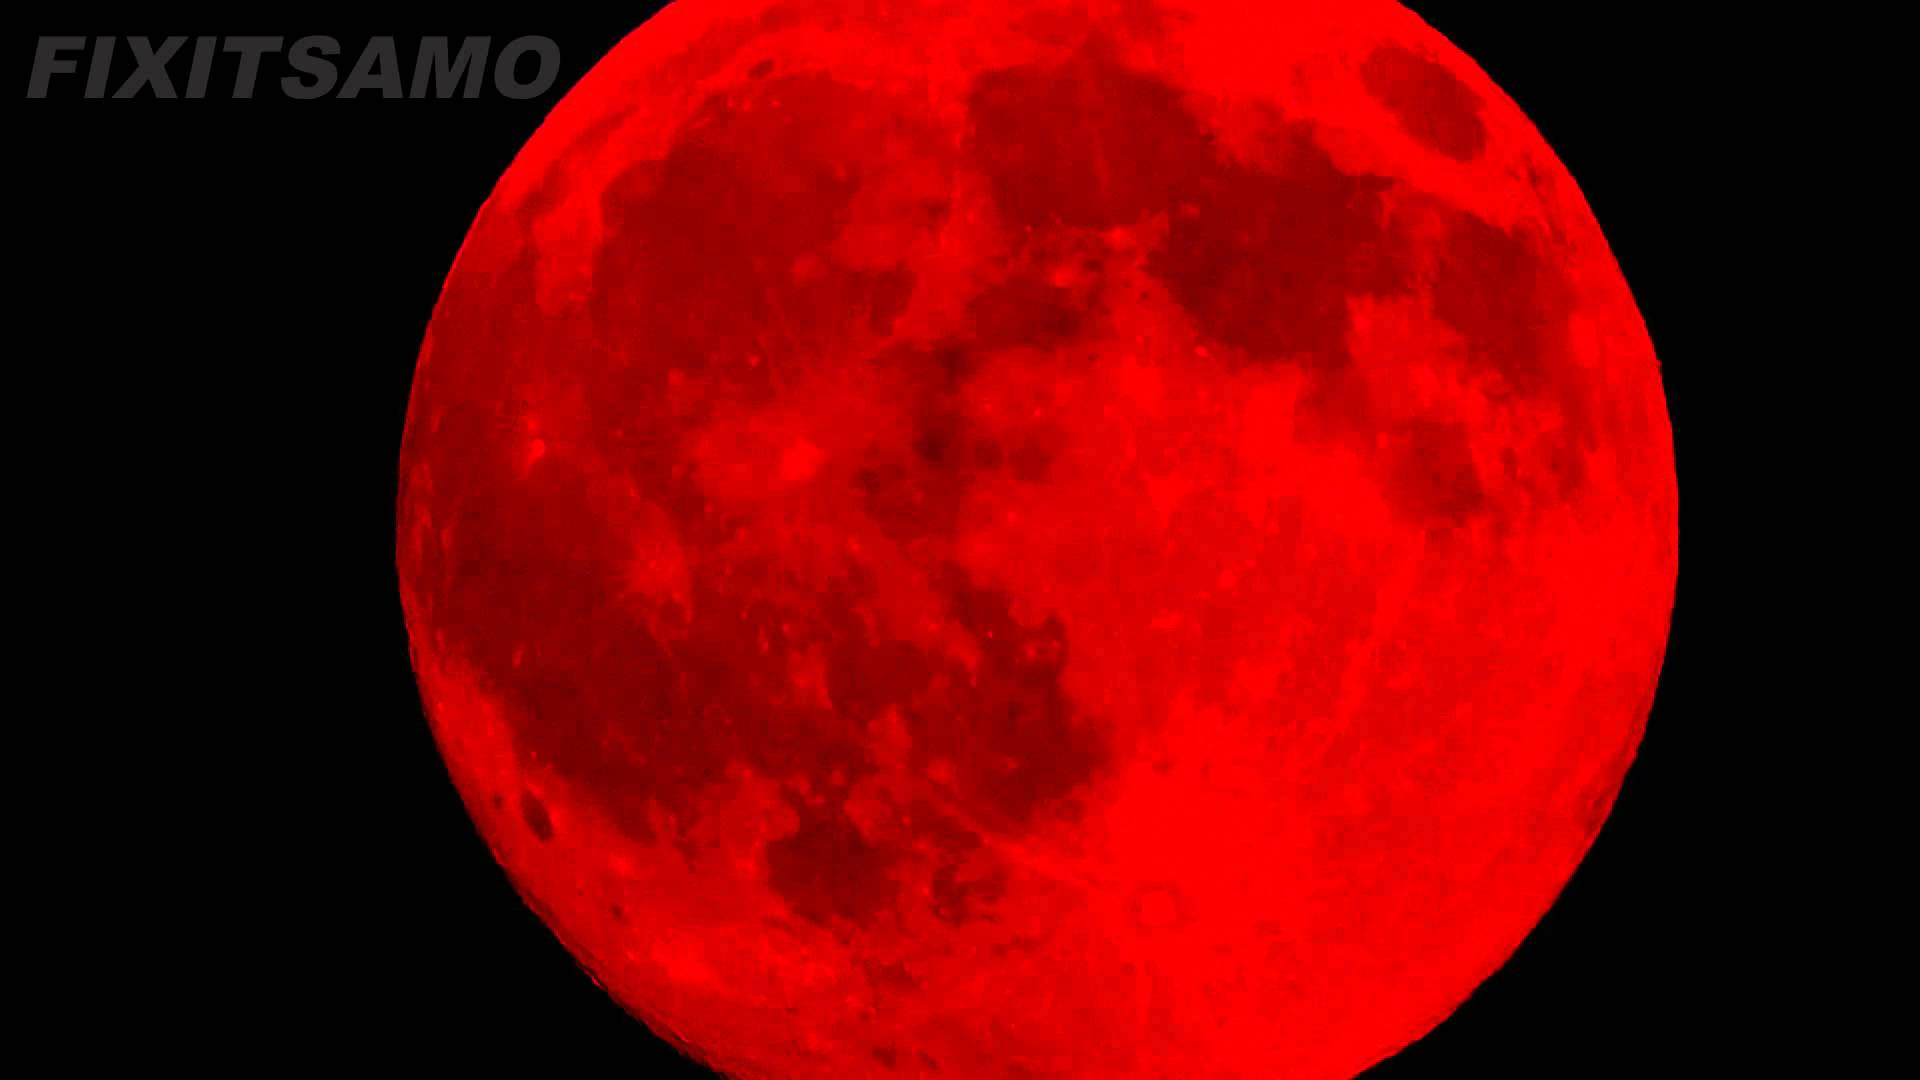 SEE THE REAL BLOOD MOON - YouTube